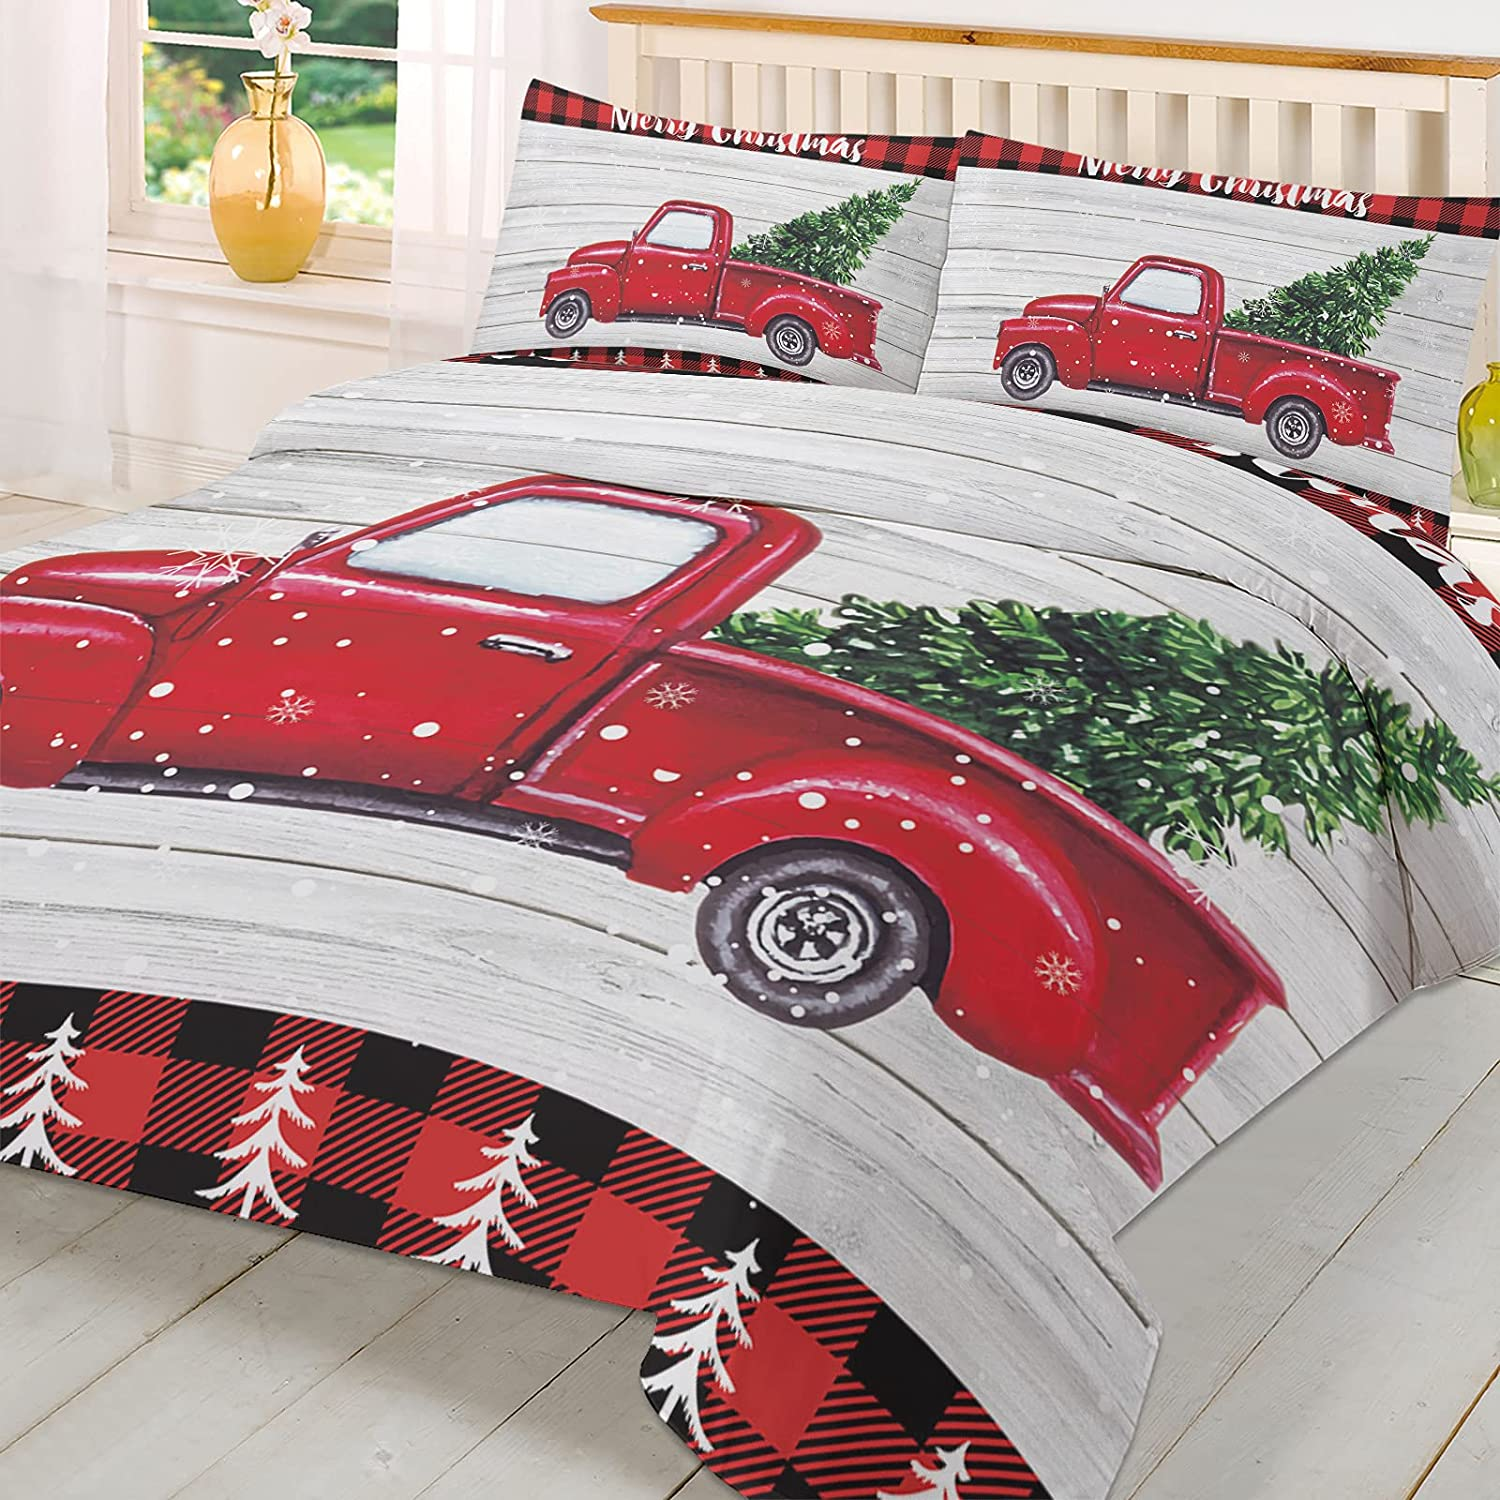 Queen Duvet Cover New sales Discount is also underway Set Merry Christmas Tree Xmas Truck o with Red